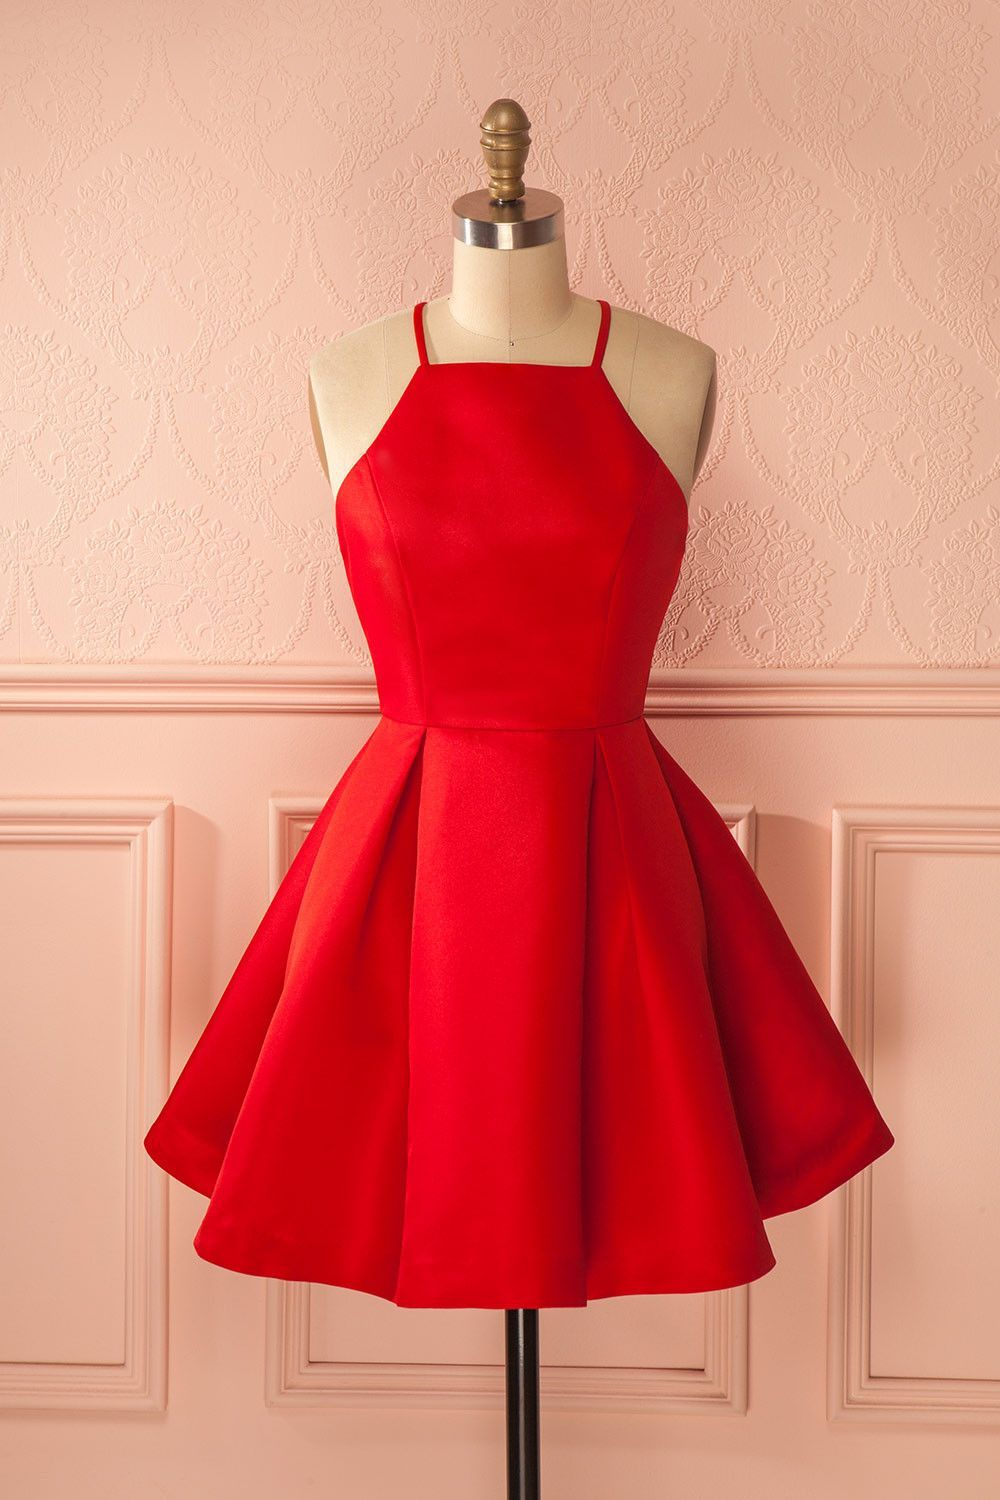 Red prom dresshalter prom dressfashion homecoming dresssexy party